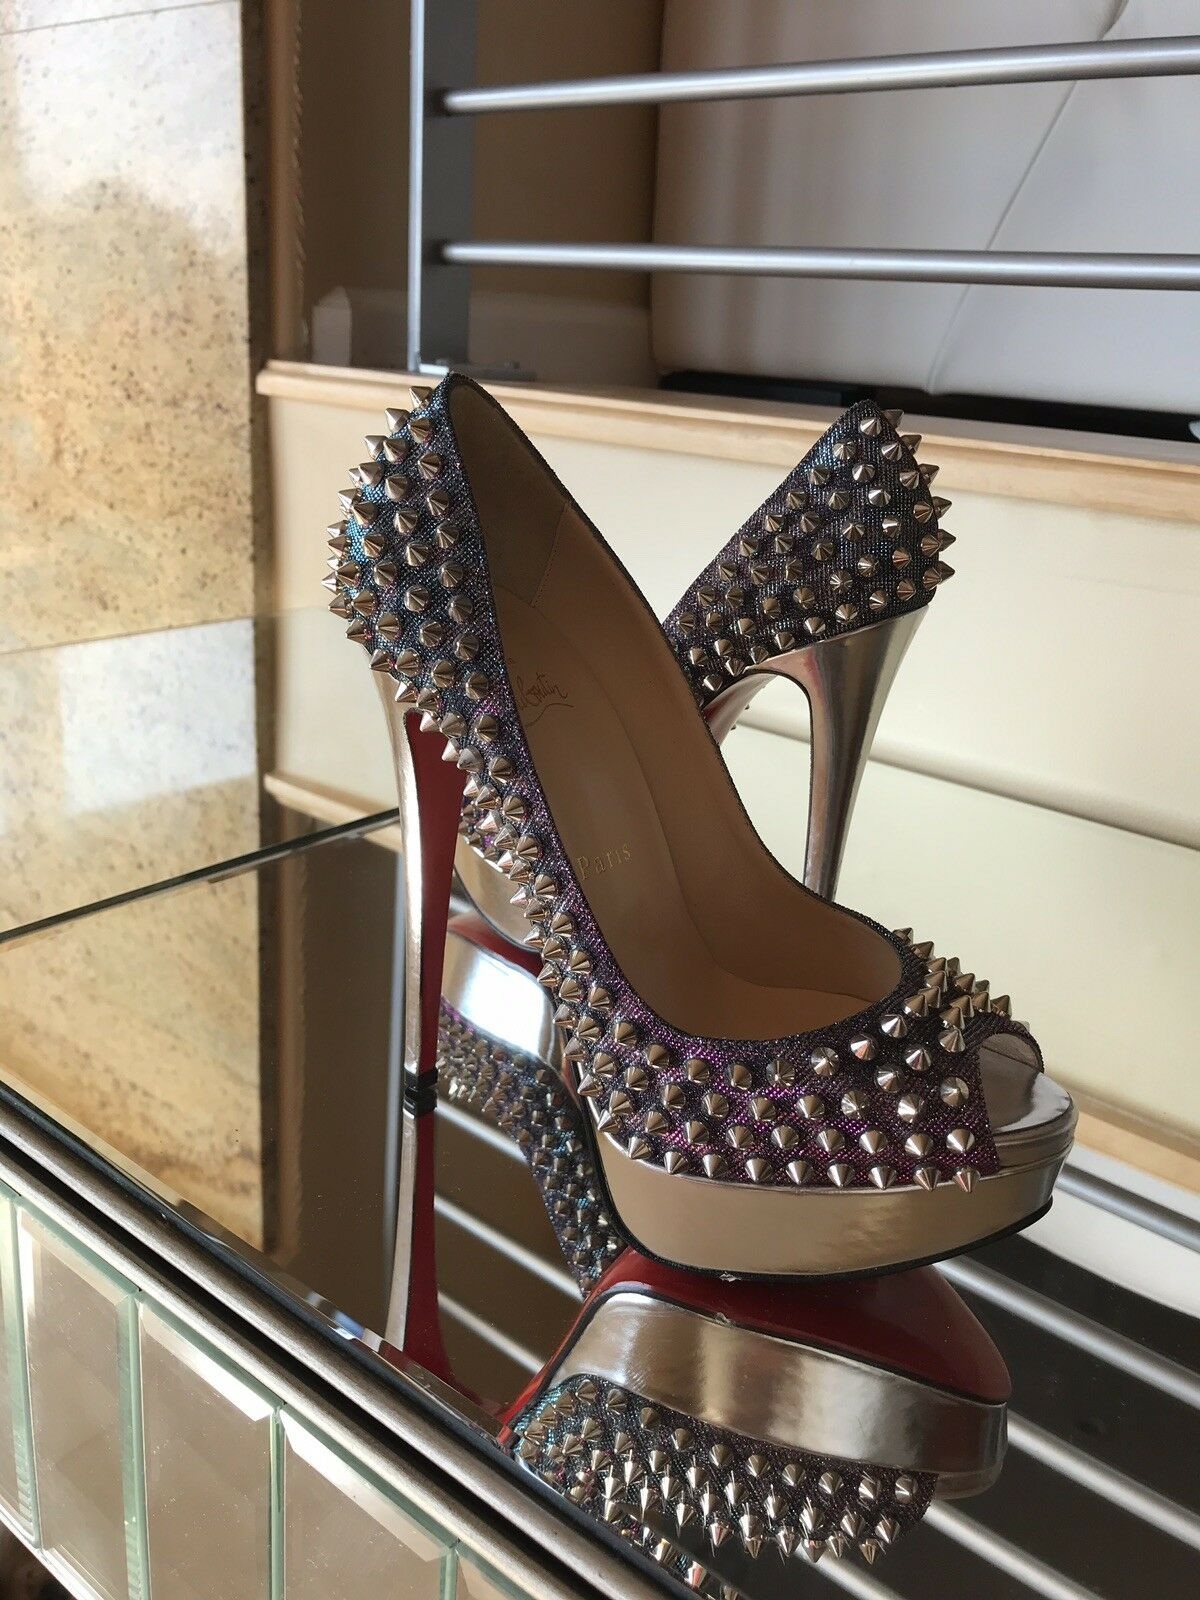 1800 NWOB Limited Addition Stud Silver Christian Christian Christian Louboutin 150mm Lady Peek 37.5 df9fee